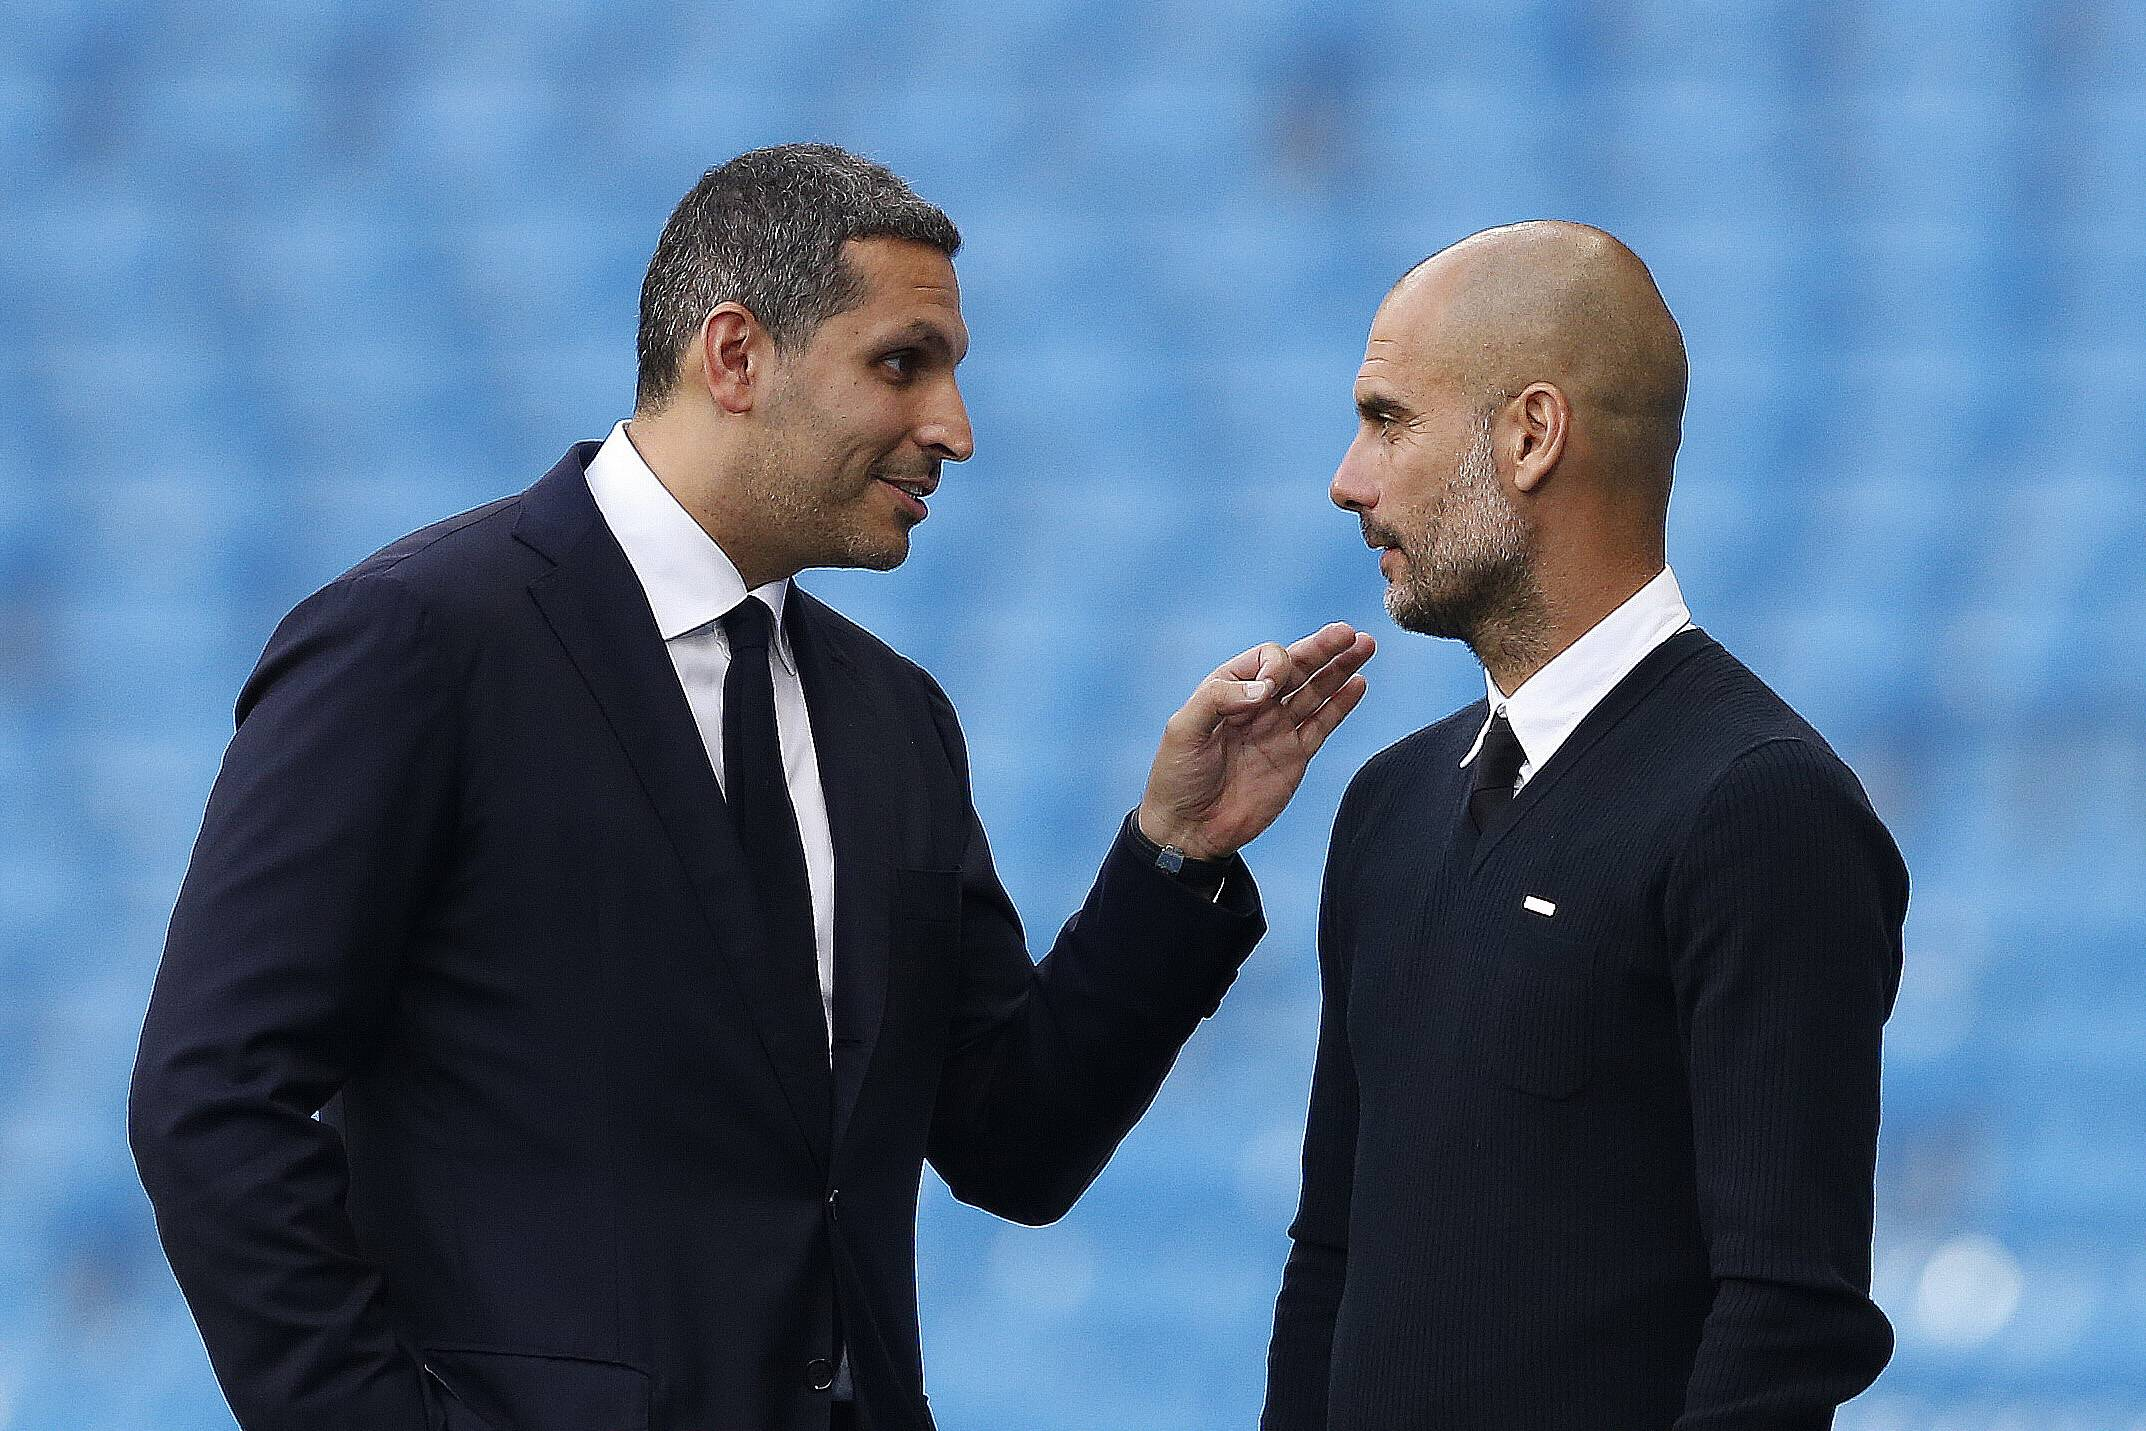 Manchester City manager Pep Guardiola chats with Manchester City chairman Khaldoon Al Mubarak after the Premier League match between Manchester City and West Ham played at The Etihad Stadium, Manchester on 28th August 2016 / Football - Premier League 2016/17 Manchester City v West Ham United Etihad Stadium, Ashton New Rd, Manchester, United Kingdom 28 August 2016 Â PUBLICATIONxNOTxINxUKxFRAxNEDxESPxSWExPOLxCHNxJPN BPI_280816_Man_City_v_West_Ham_30.jpgManchester City Manager Pep Guardiola Chats with Manchester City Chairman Khaldoon Al Mubarak After The Premier League Match between Manchester City and West Ham played AT The Etihad Stage Manchester ON 28th August 2016 Football Premier League 2016 17 Manchester City v West Ham United Etihad Stage Ashton New rd Manchester United Kingdom 28 August 2016 Â PUBLICATIONxNOTxINxUKxFRAxNEDxESPxSWExPOLxCHNxJPN  jpg